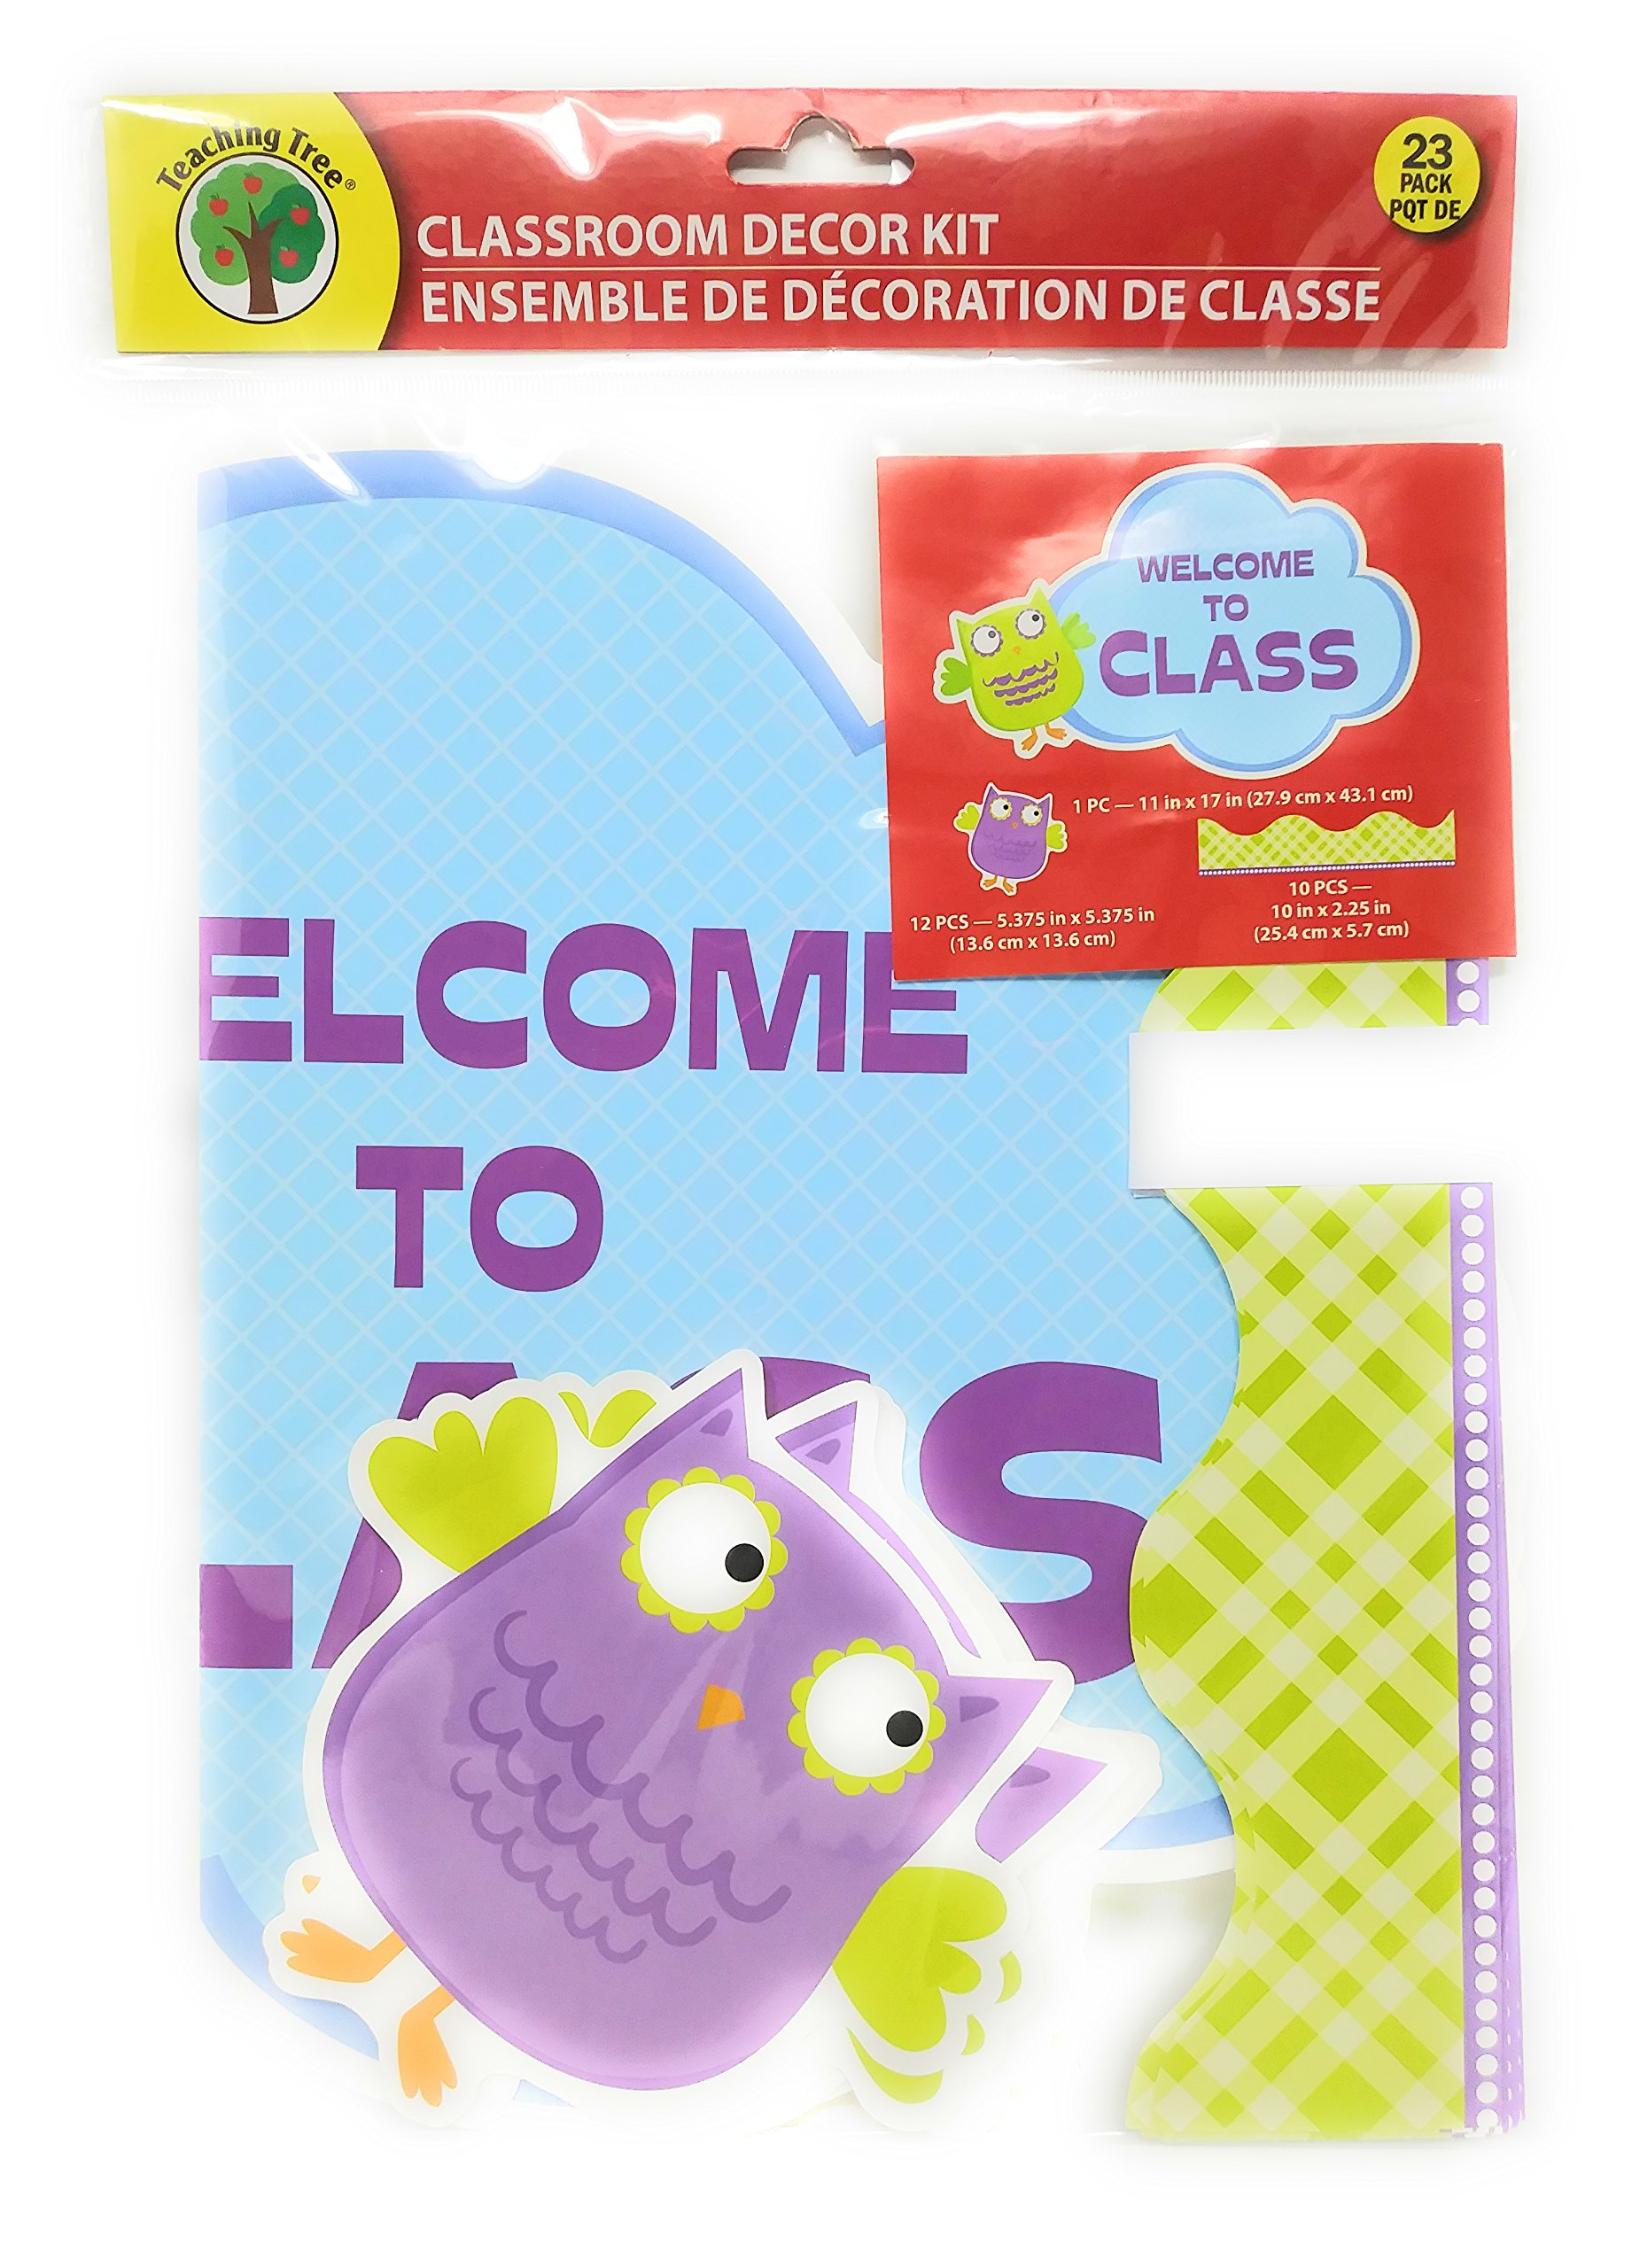 Back to School Student Toddler Pre-school Elementary Middle School Classroom Teacher Room Plastic Classroom Room Decor Decoration Bulletin Board Border 23-pc. Pack (BONUS 3 POST IT NOTES Welcome Class